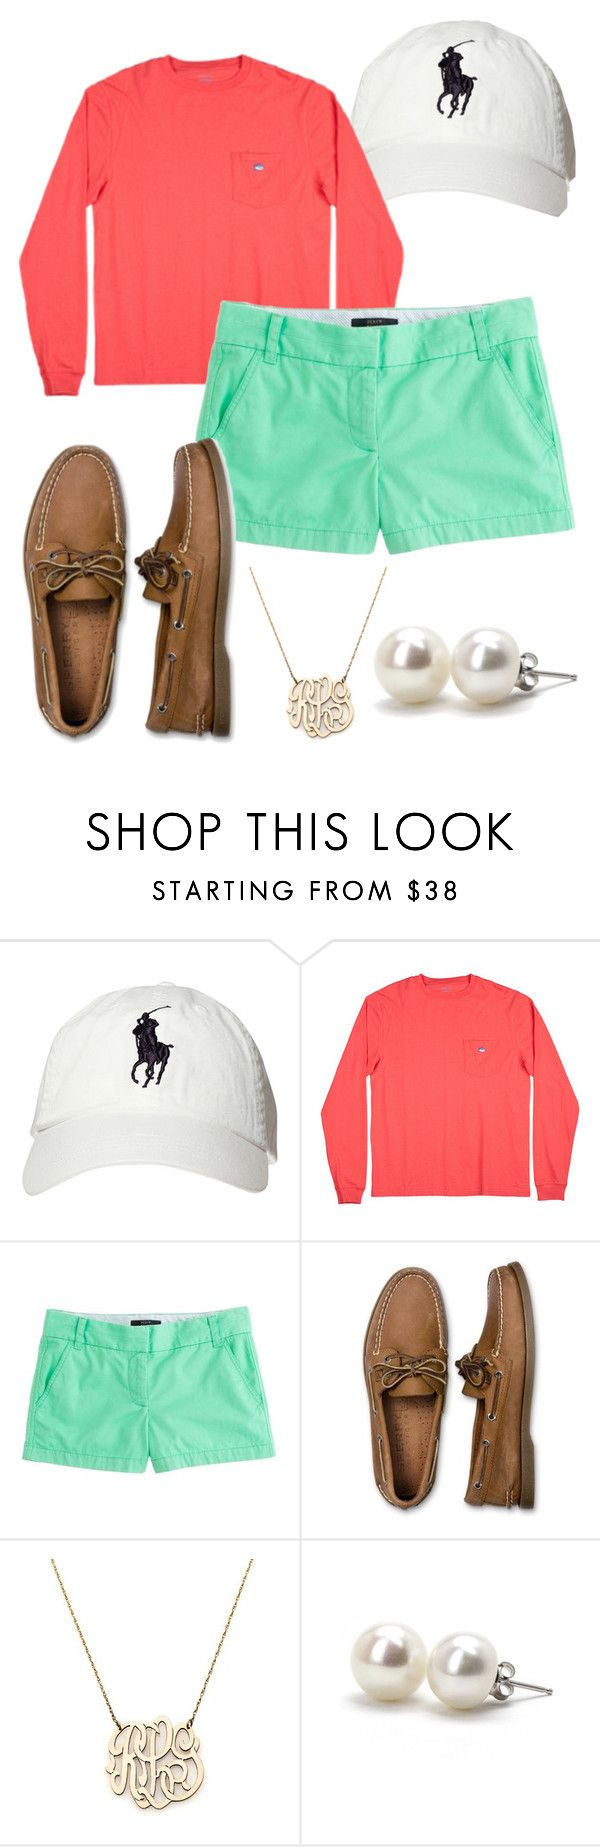 """Country Club Prep."" by smorrisonn ❤ liked on Polyvore featuring Polo Ralph Lauren, J.Crew, Sperry, Moon and Lola, Bounkit, country, casual, preppy, jcrew and pearls"